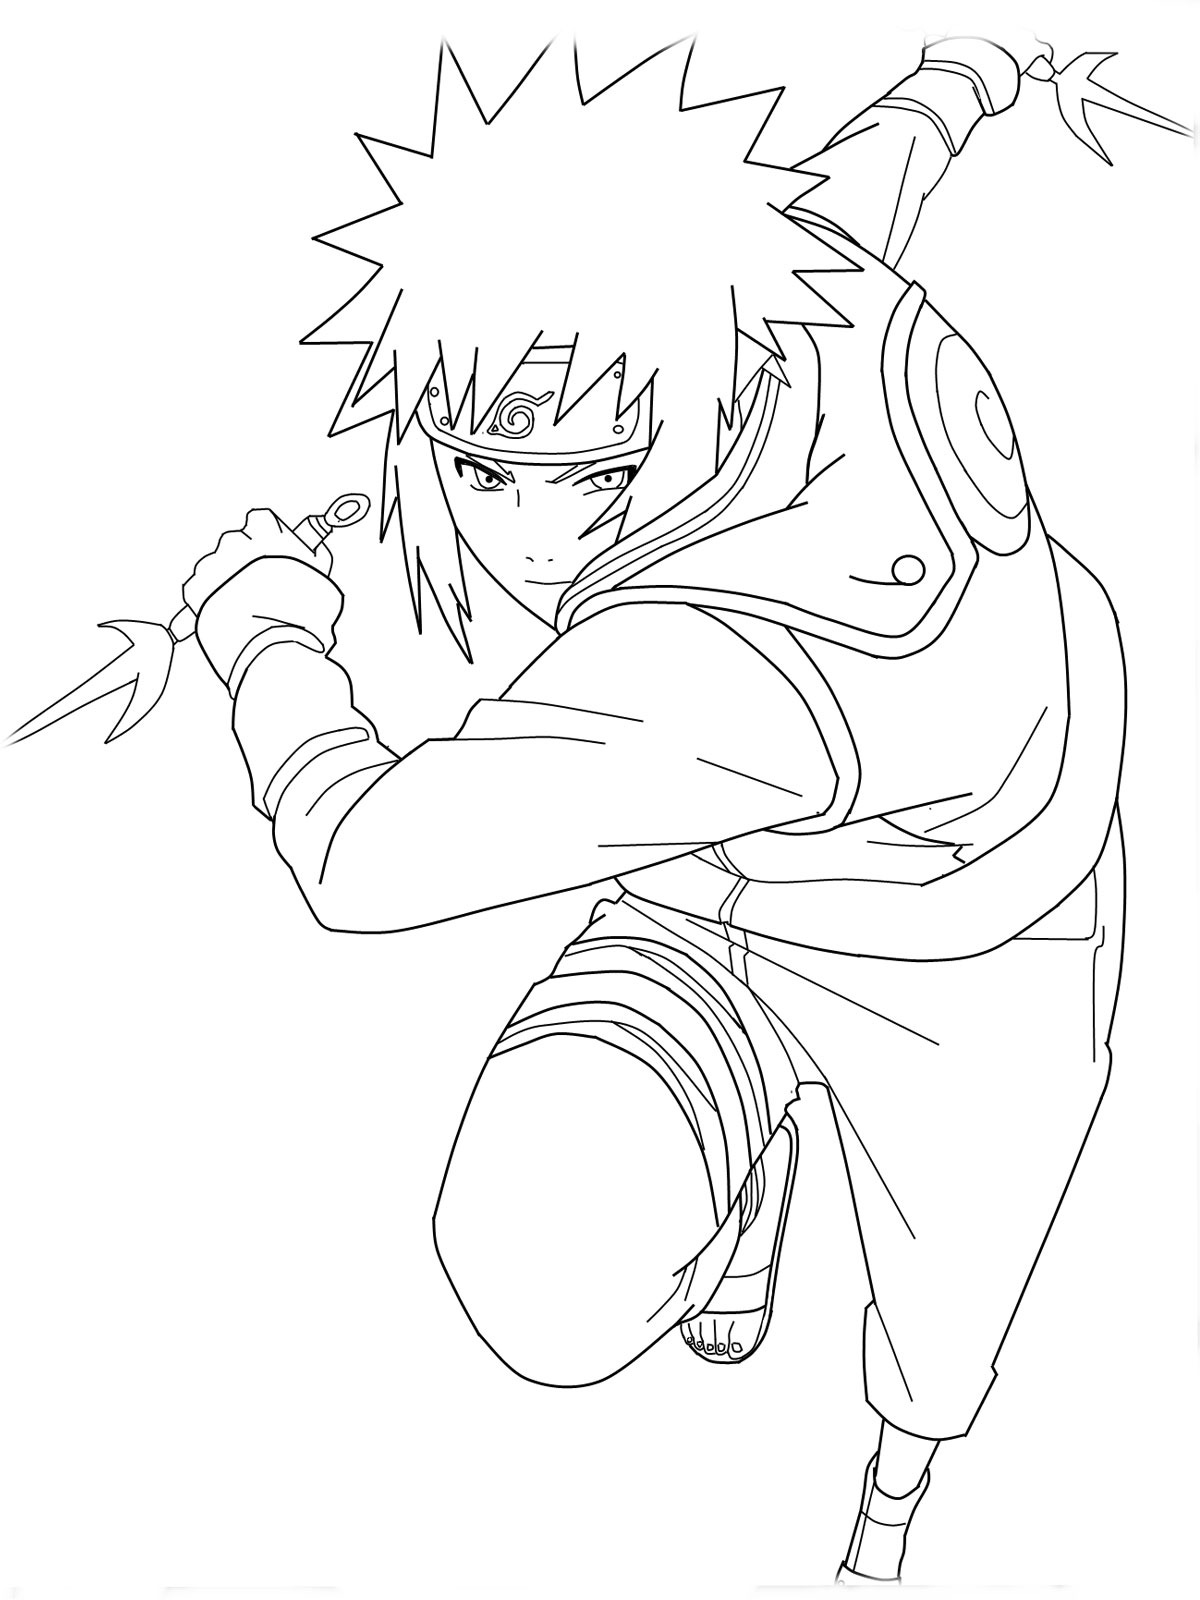 naruto coloring book pages - photo#22